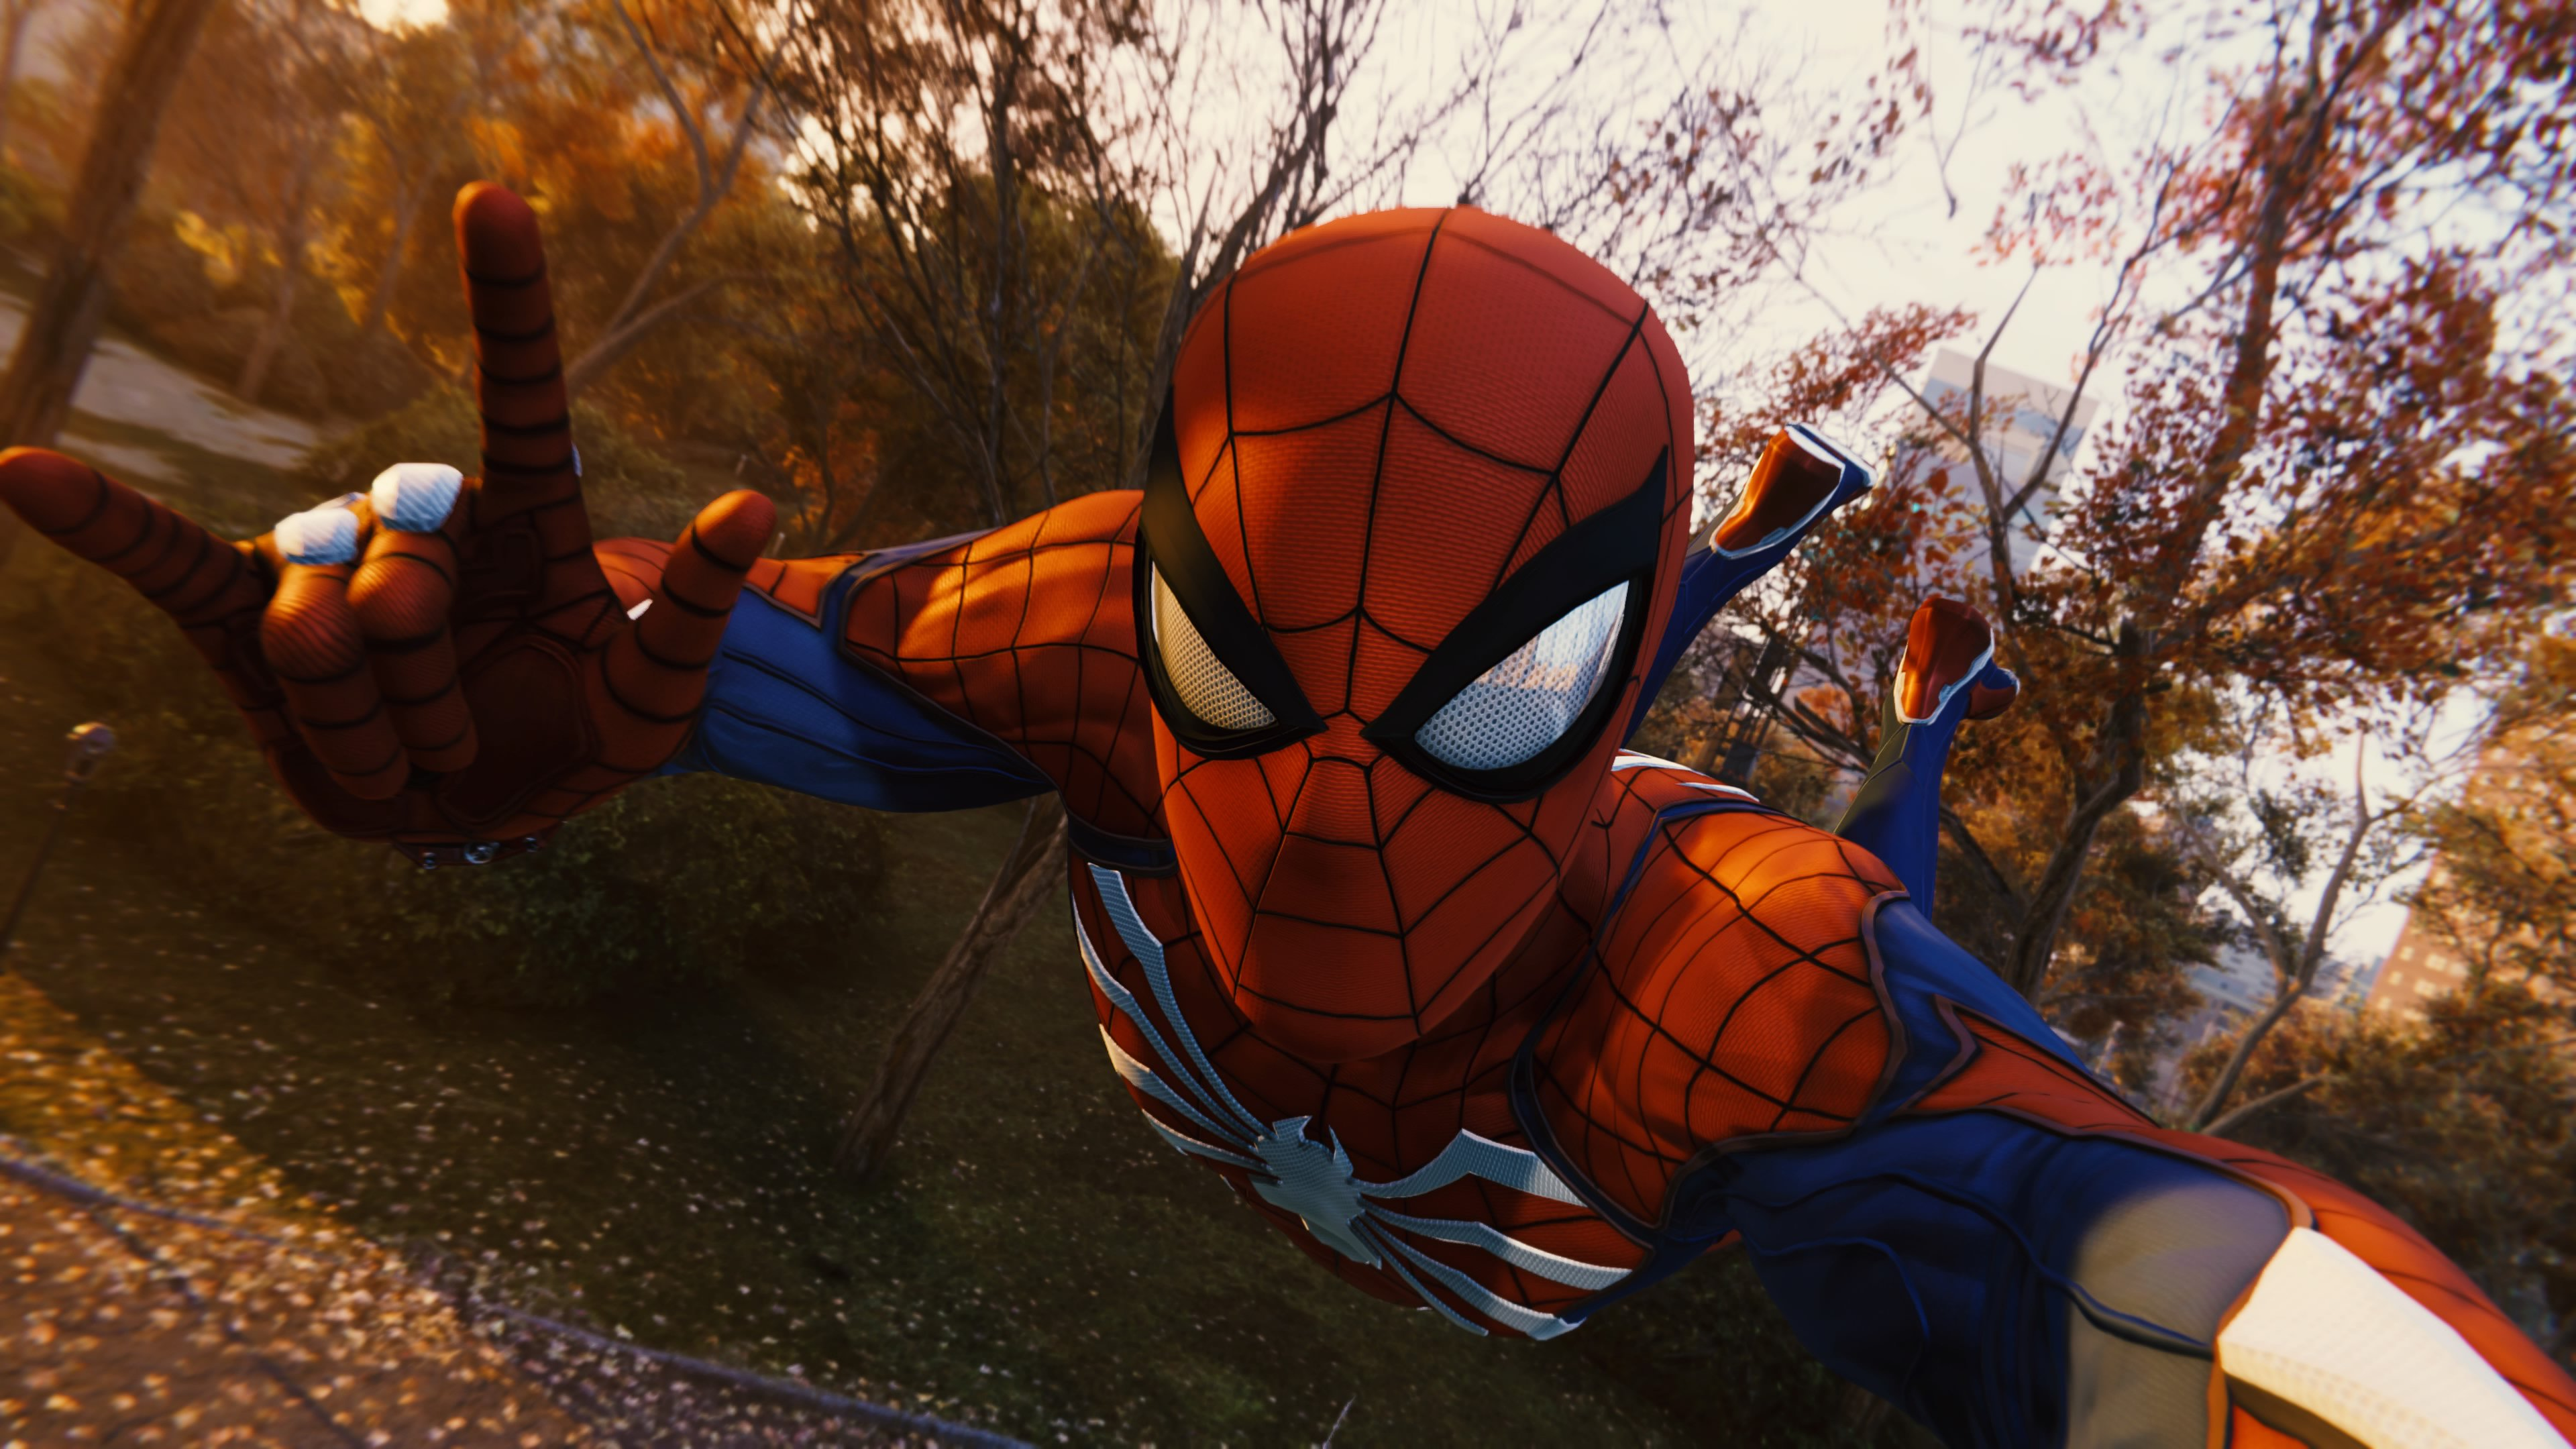 spiderman 4k ps game 1537692833 - Spiderman 4k Ps Game - spiderman wallpapers, ps4 games wallpapers, ps games wallpapers, hd-wallpapers, games wallpapers, 4k-wallpapers, 2018 games wallpapers